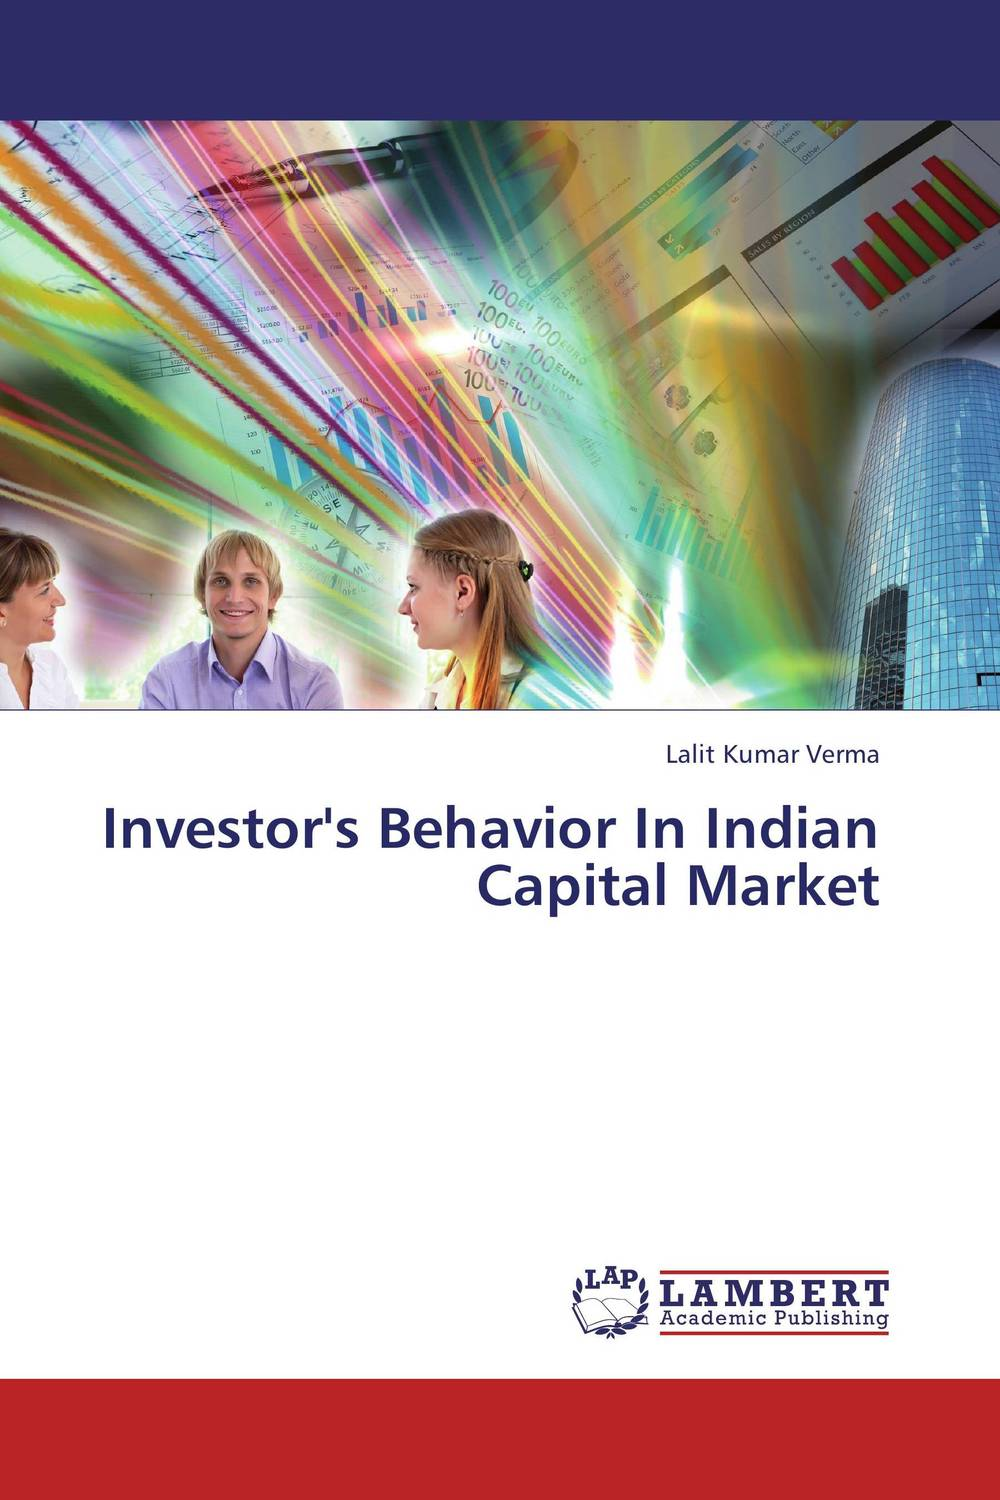 Investor's Behavior In Indian Capital Market wesley whittaker a the little book of venture capital investing empowering economic growth and investment portfolios